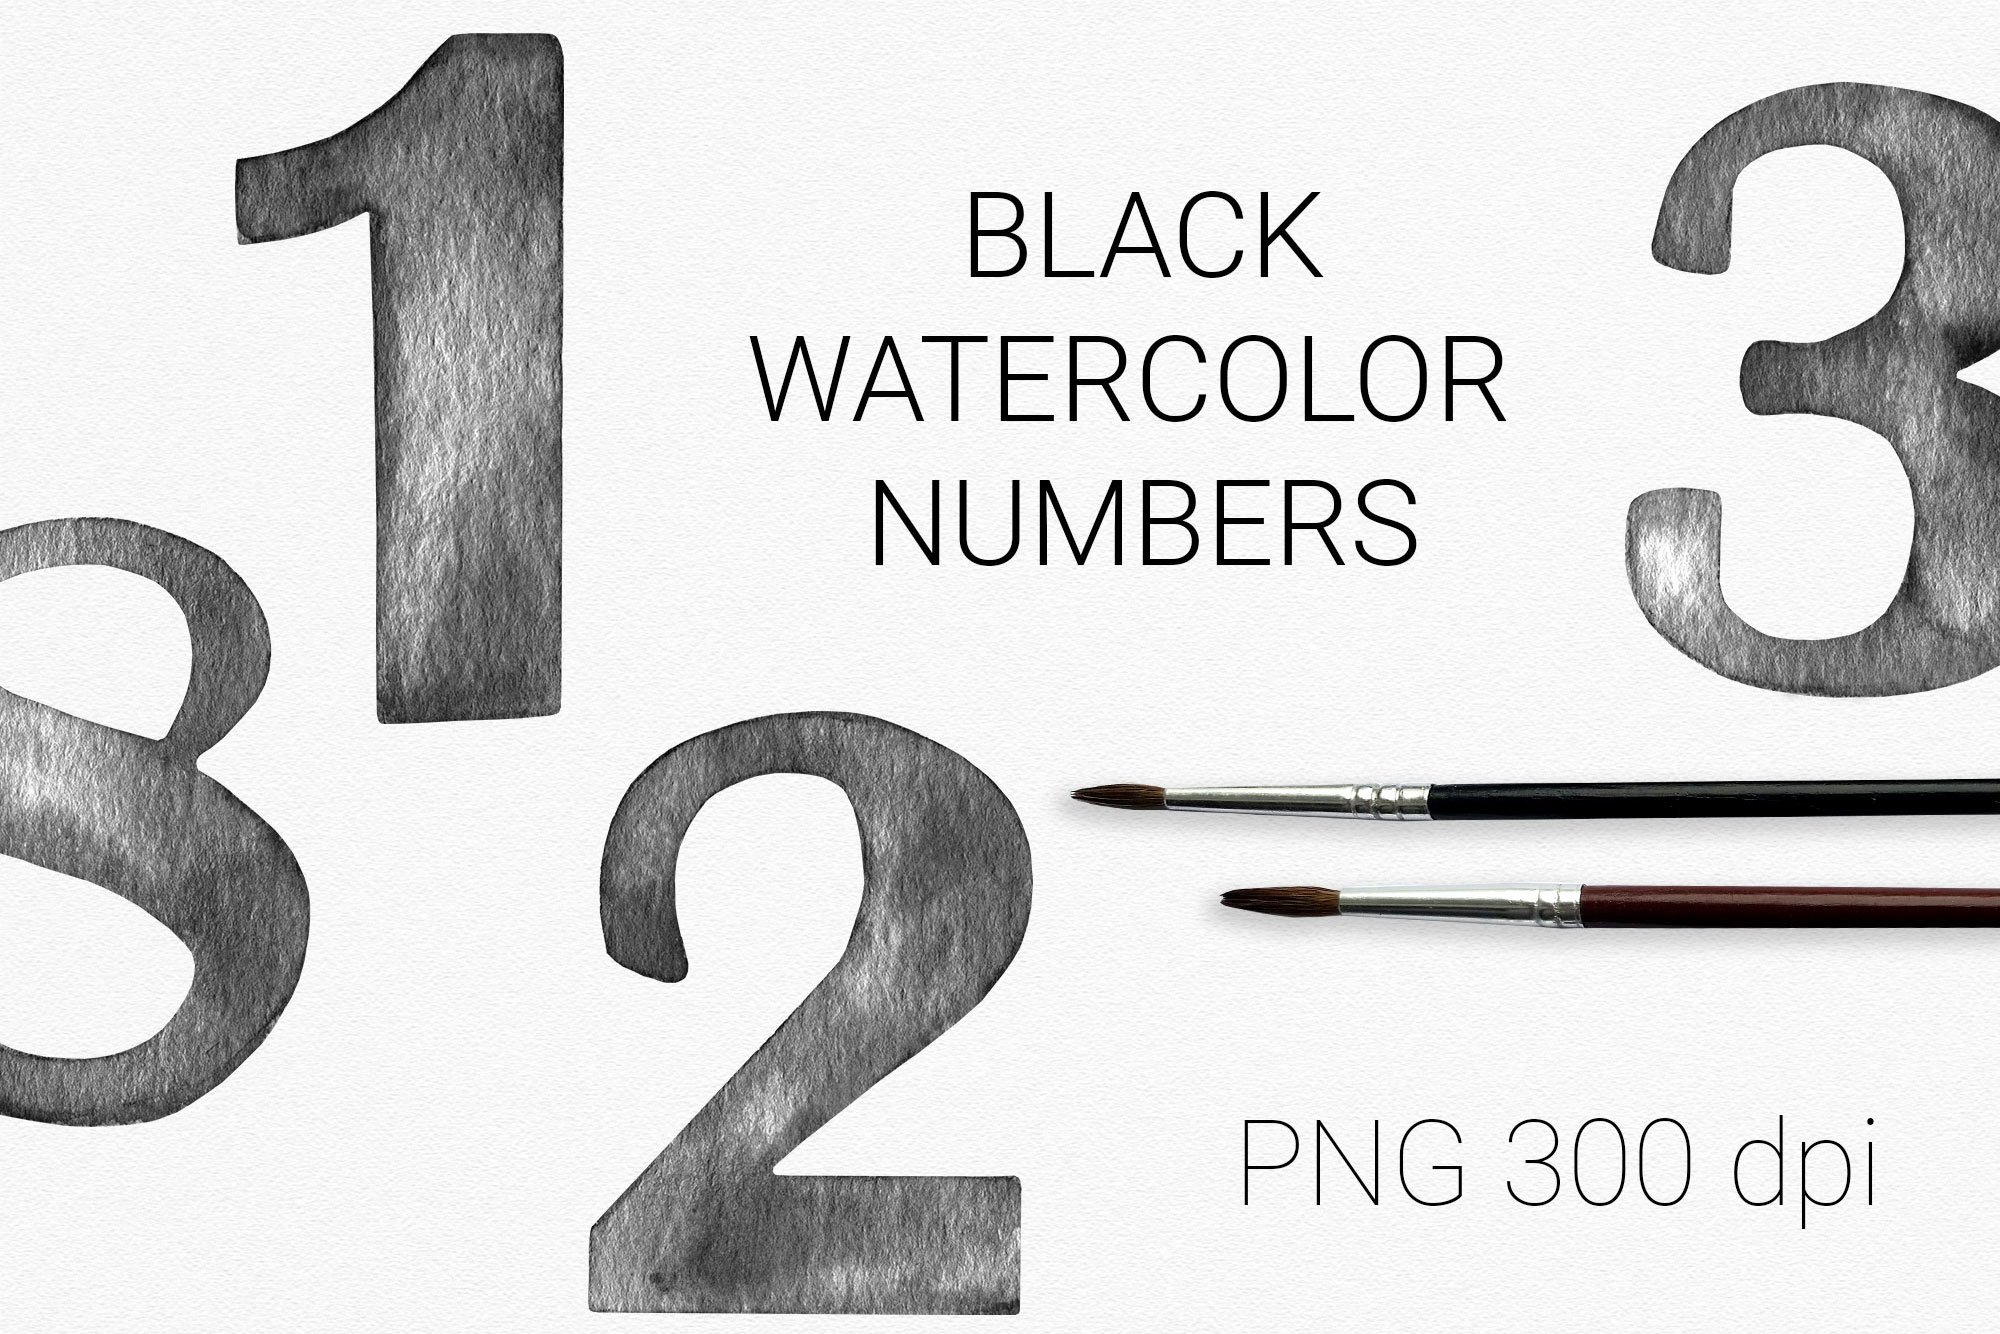 Black watercolor number cliparts with flower arrangements example image 2